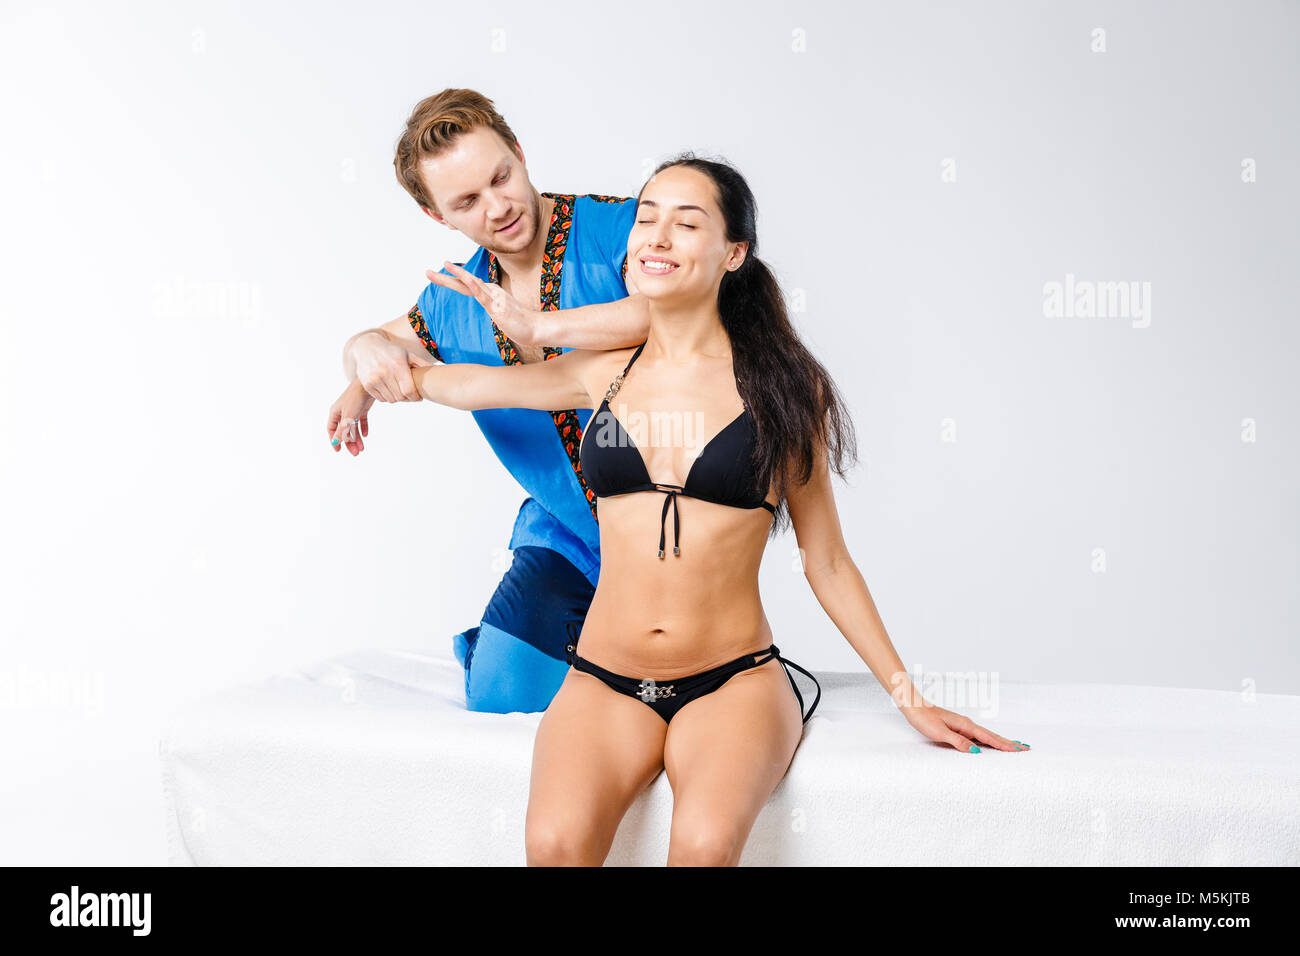 Theme massage and body care. Young doctor masseur in working suit makes massage to relax and strengthen the muscles - Stock Image